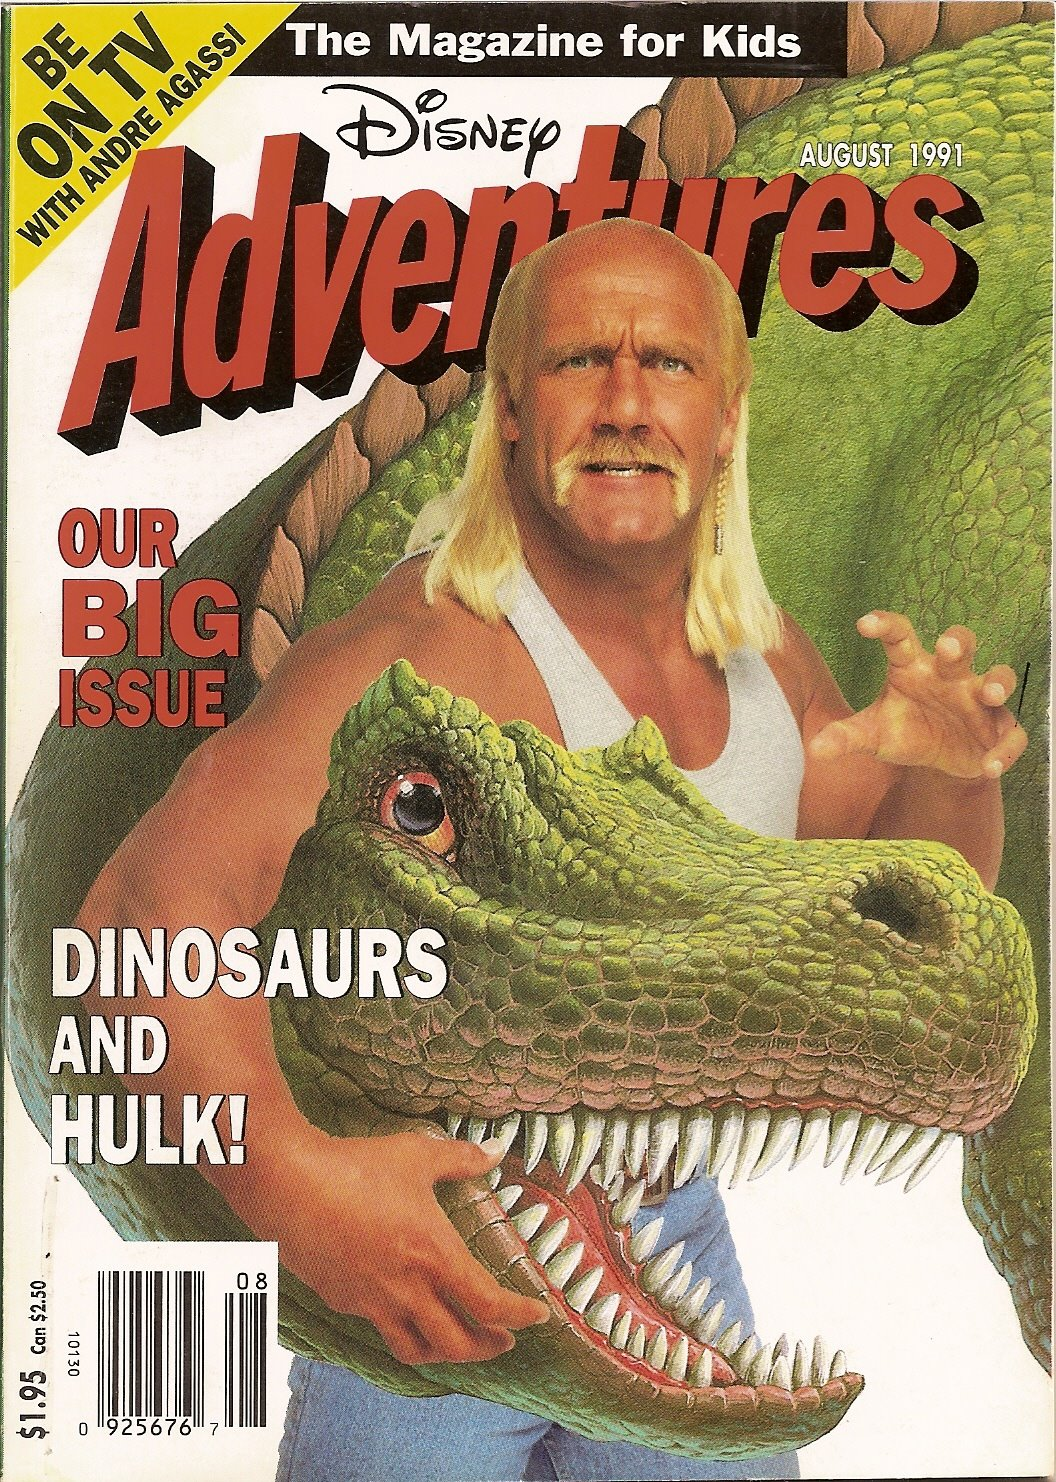 Disney Adventures Magazine Hulk Hogan Dinosaurs